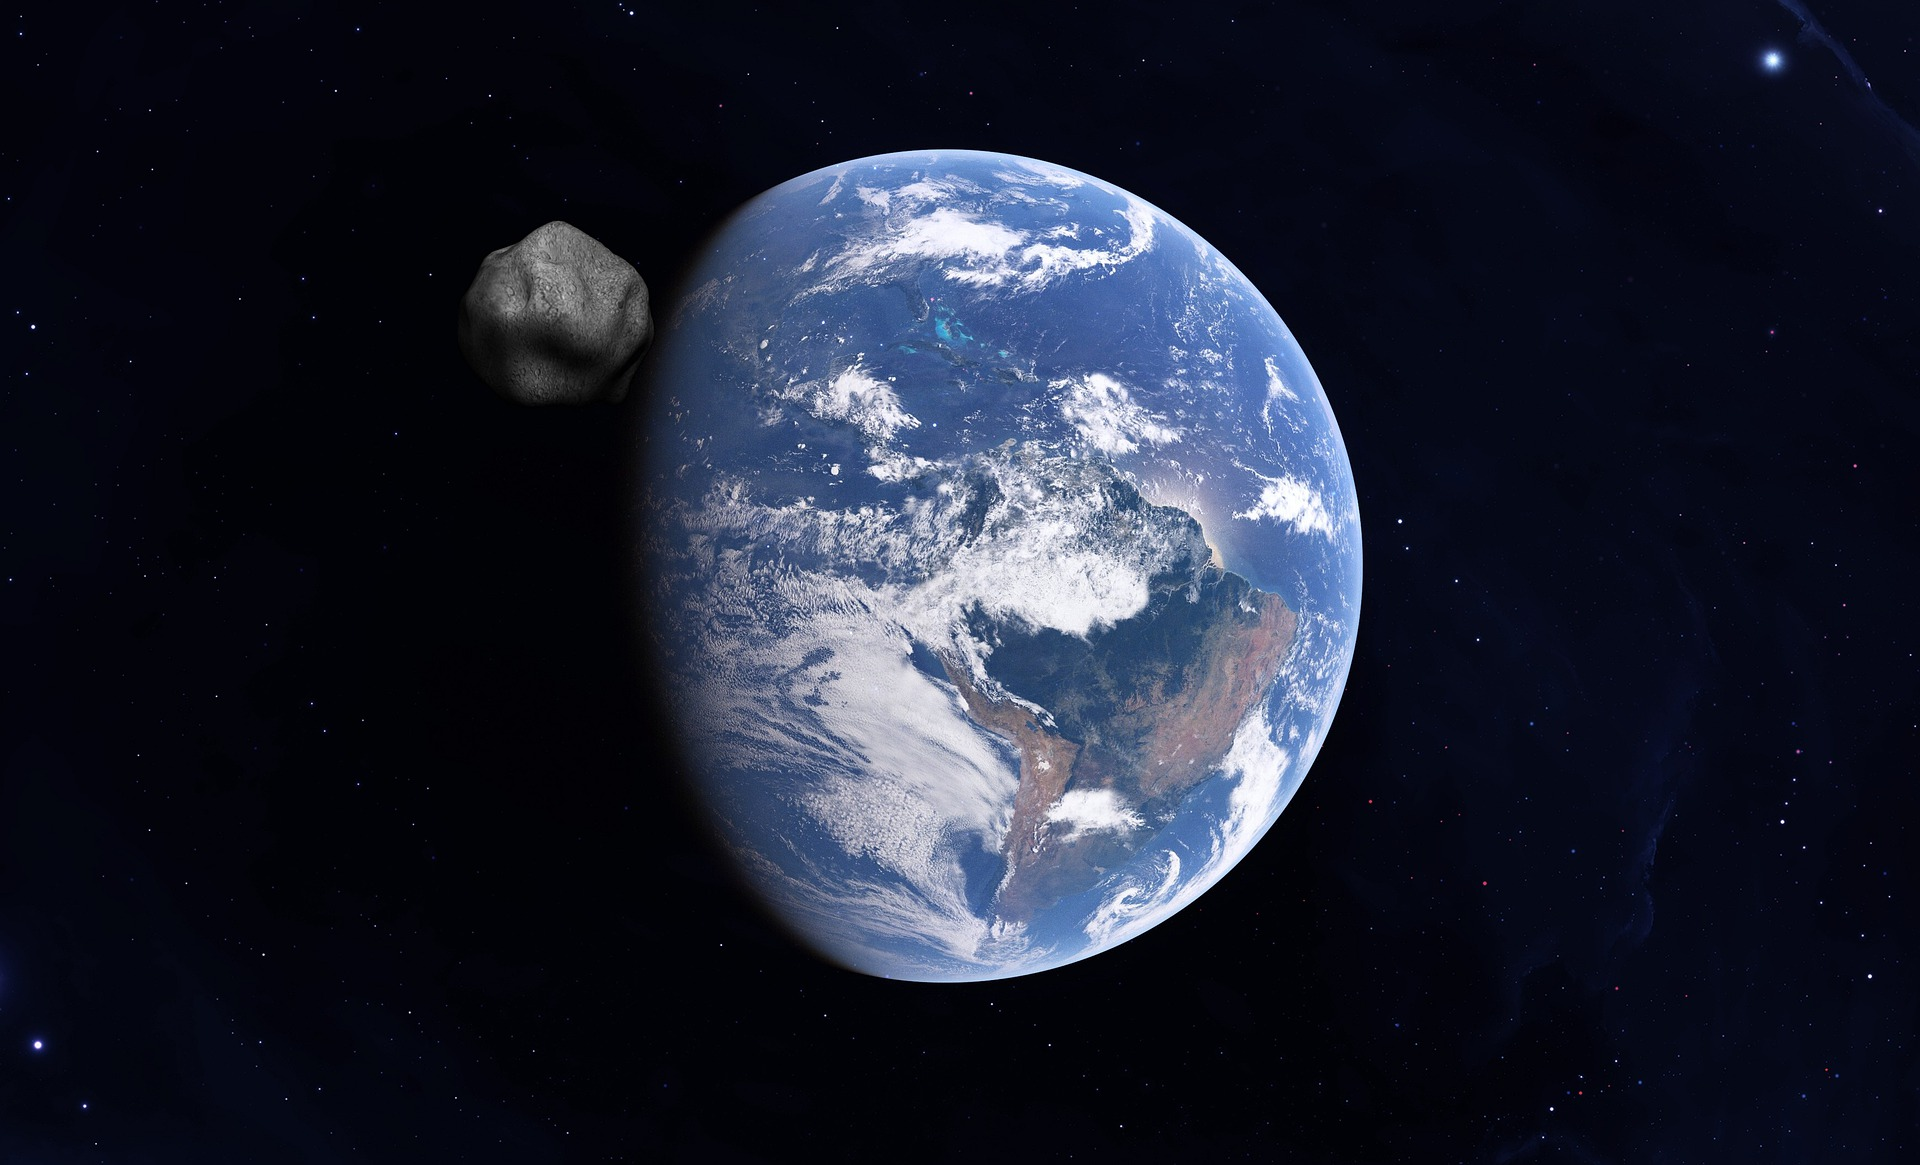 Asteroid 1.5 times the size of the London Eye to pass Earth on July 24